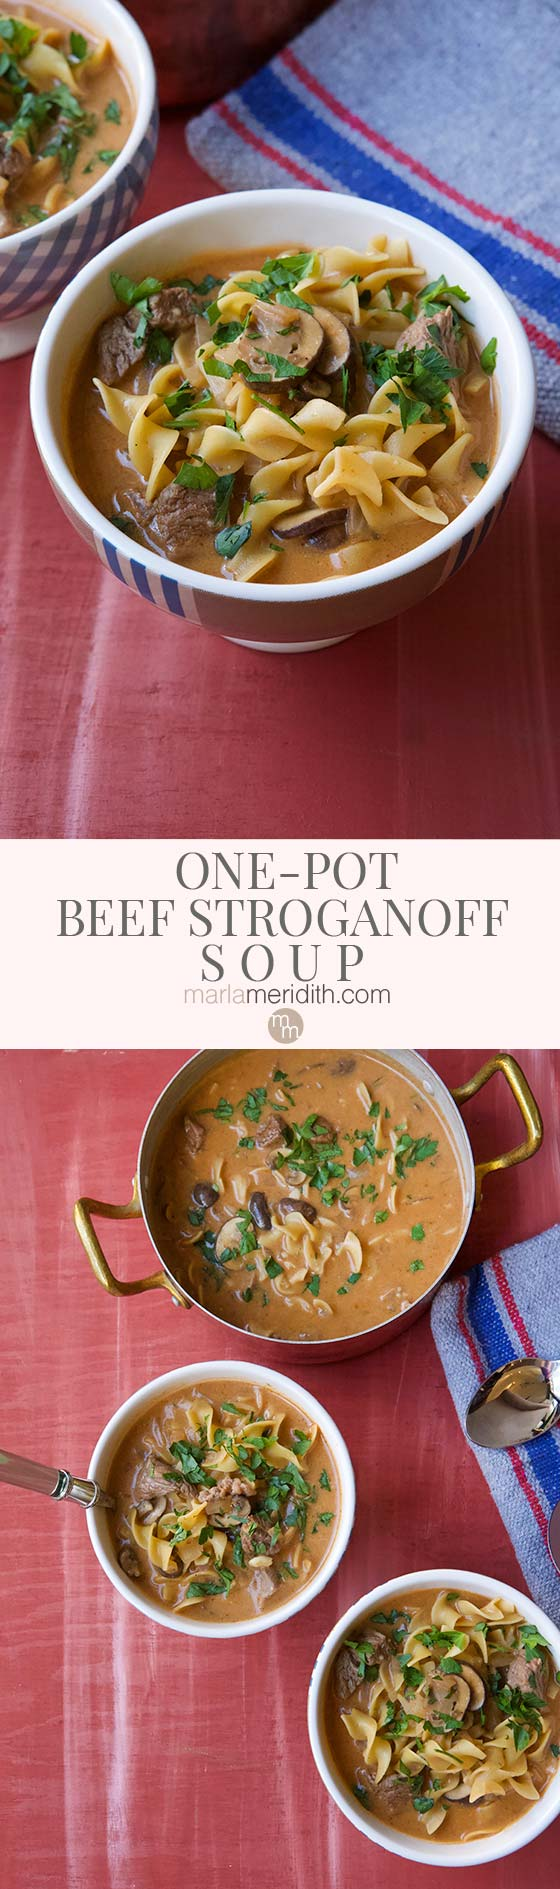 This healthy and delicious One-Pot Beef Stroganoff Soup recipe is everything you need for a warming family meal that comes together in just 30 minutes   MarlaMeridith.com